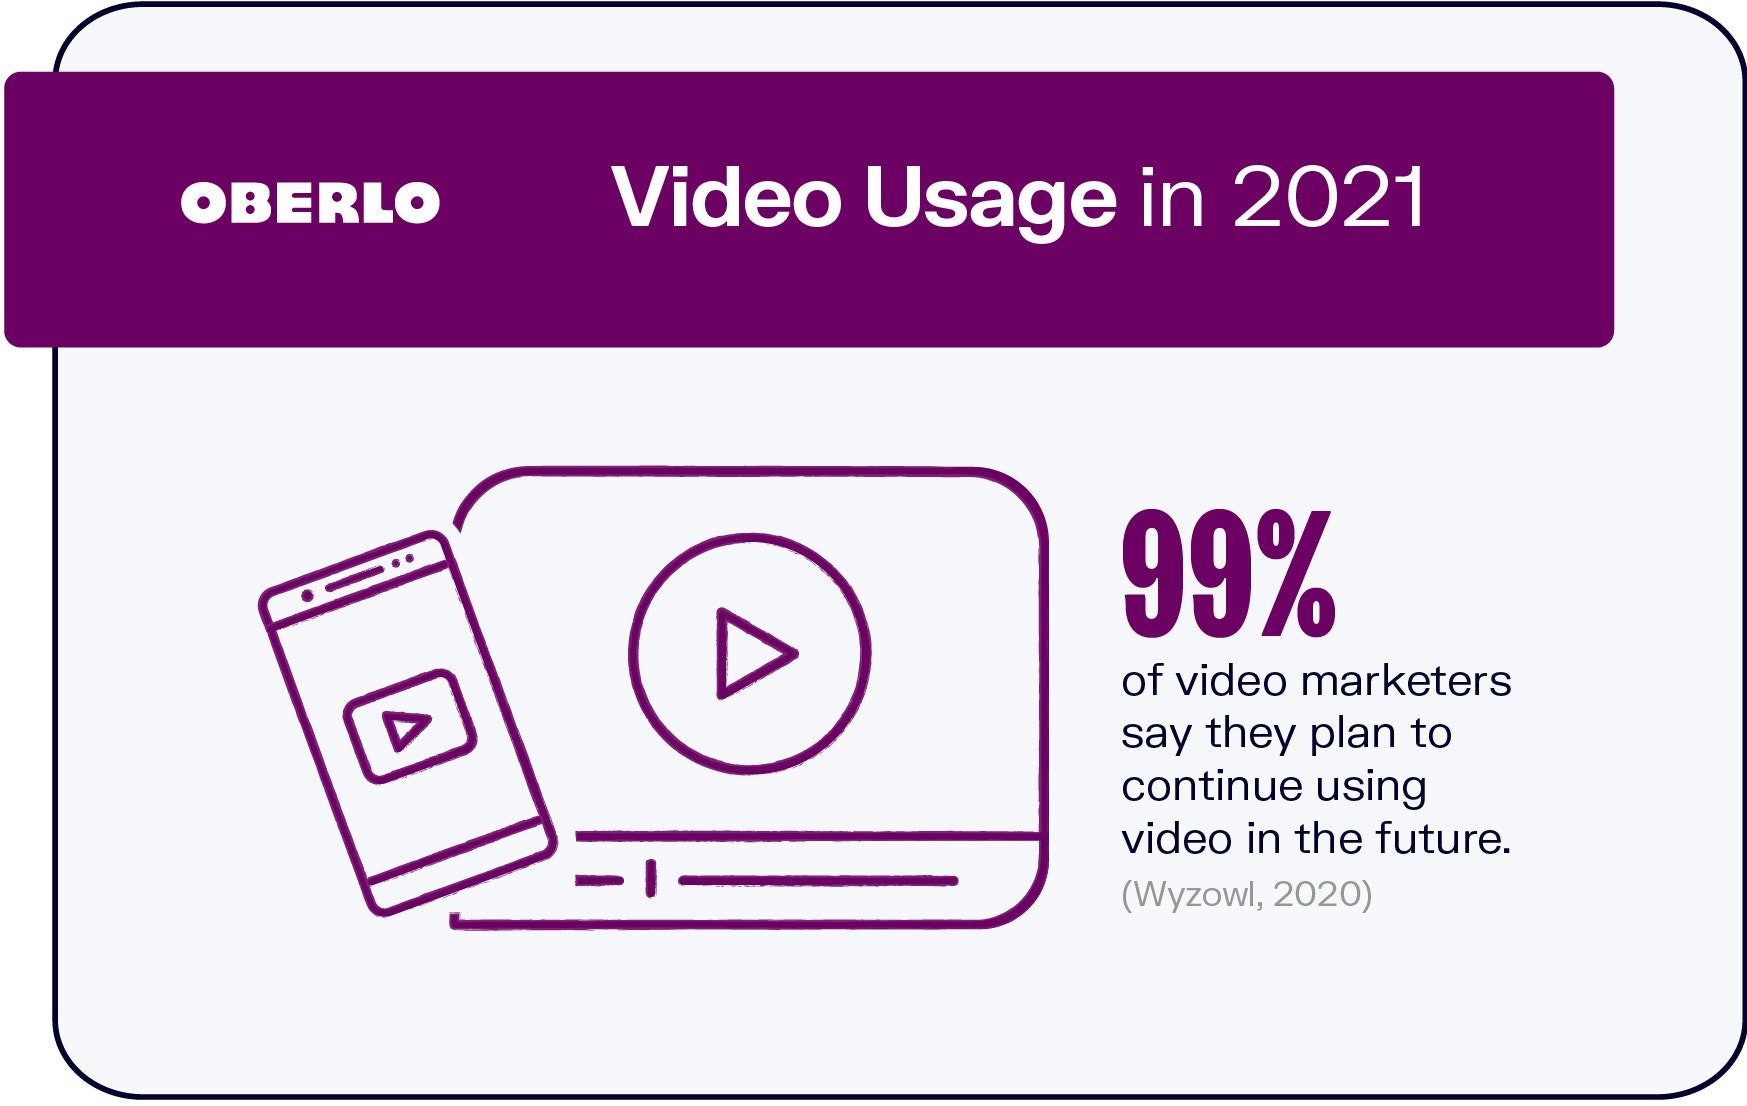 Video Usage in 2021